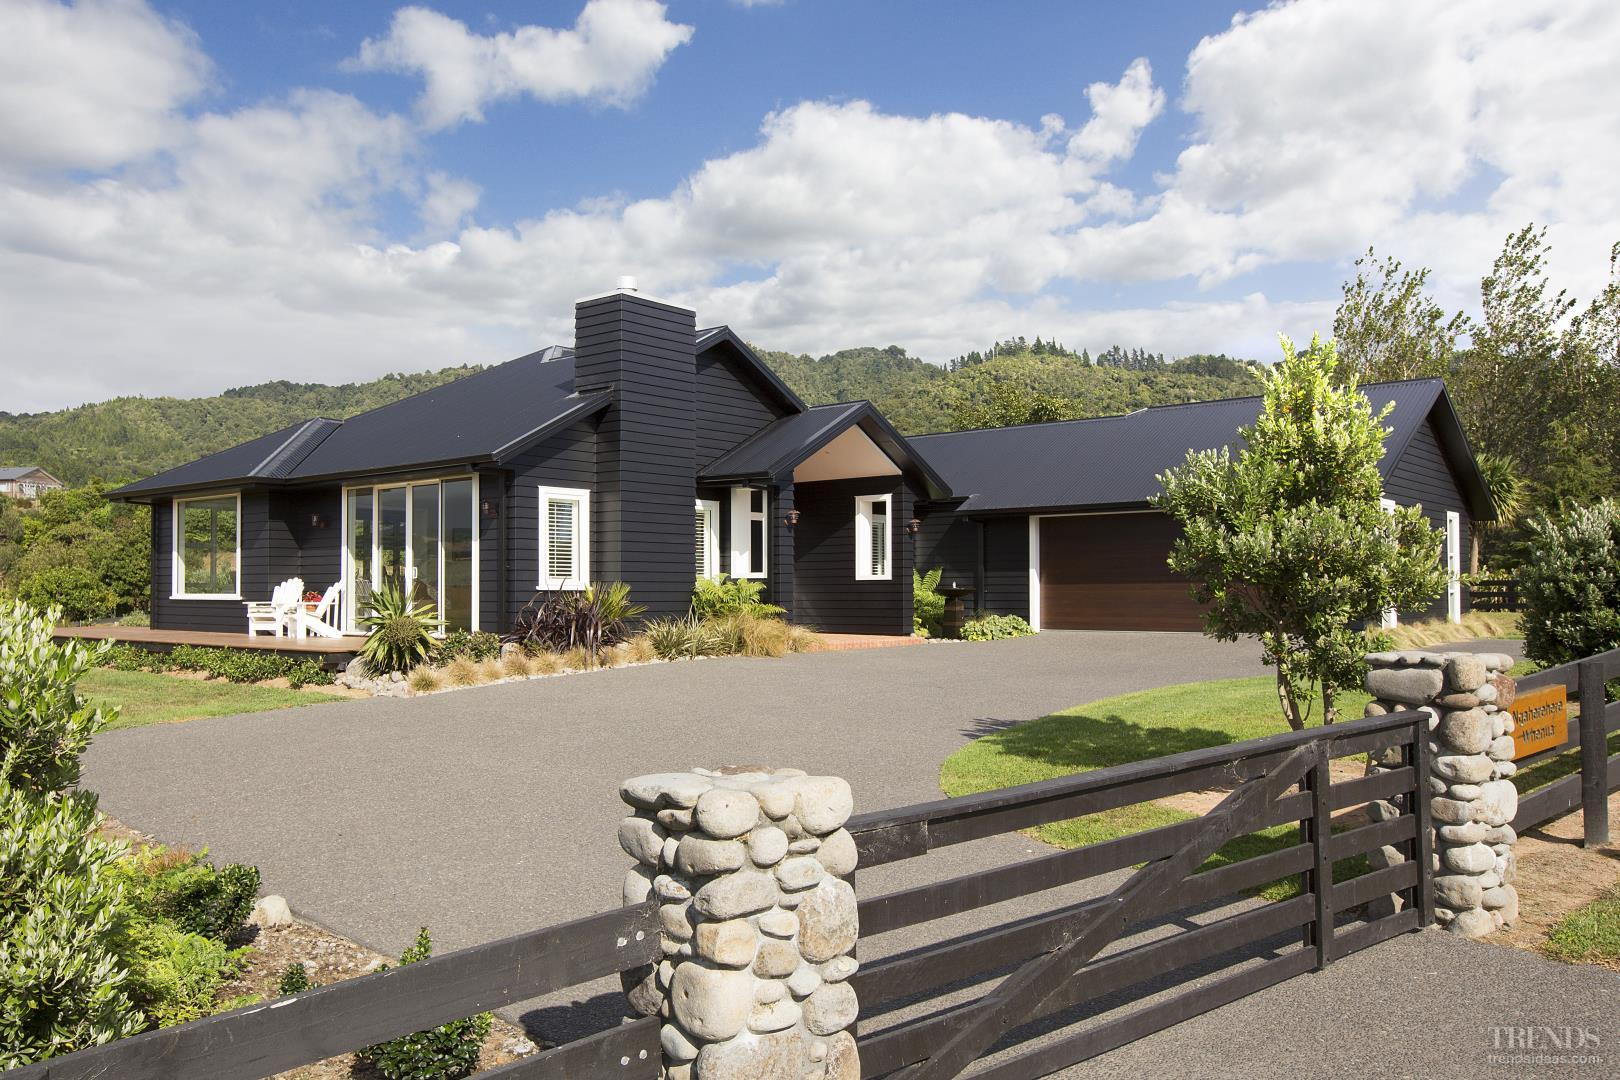 Award Winning Country Home With Black Cladding